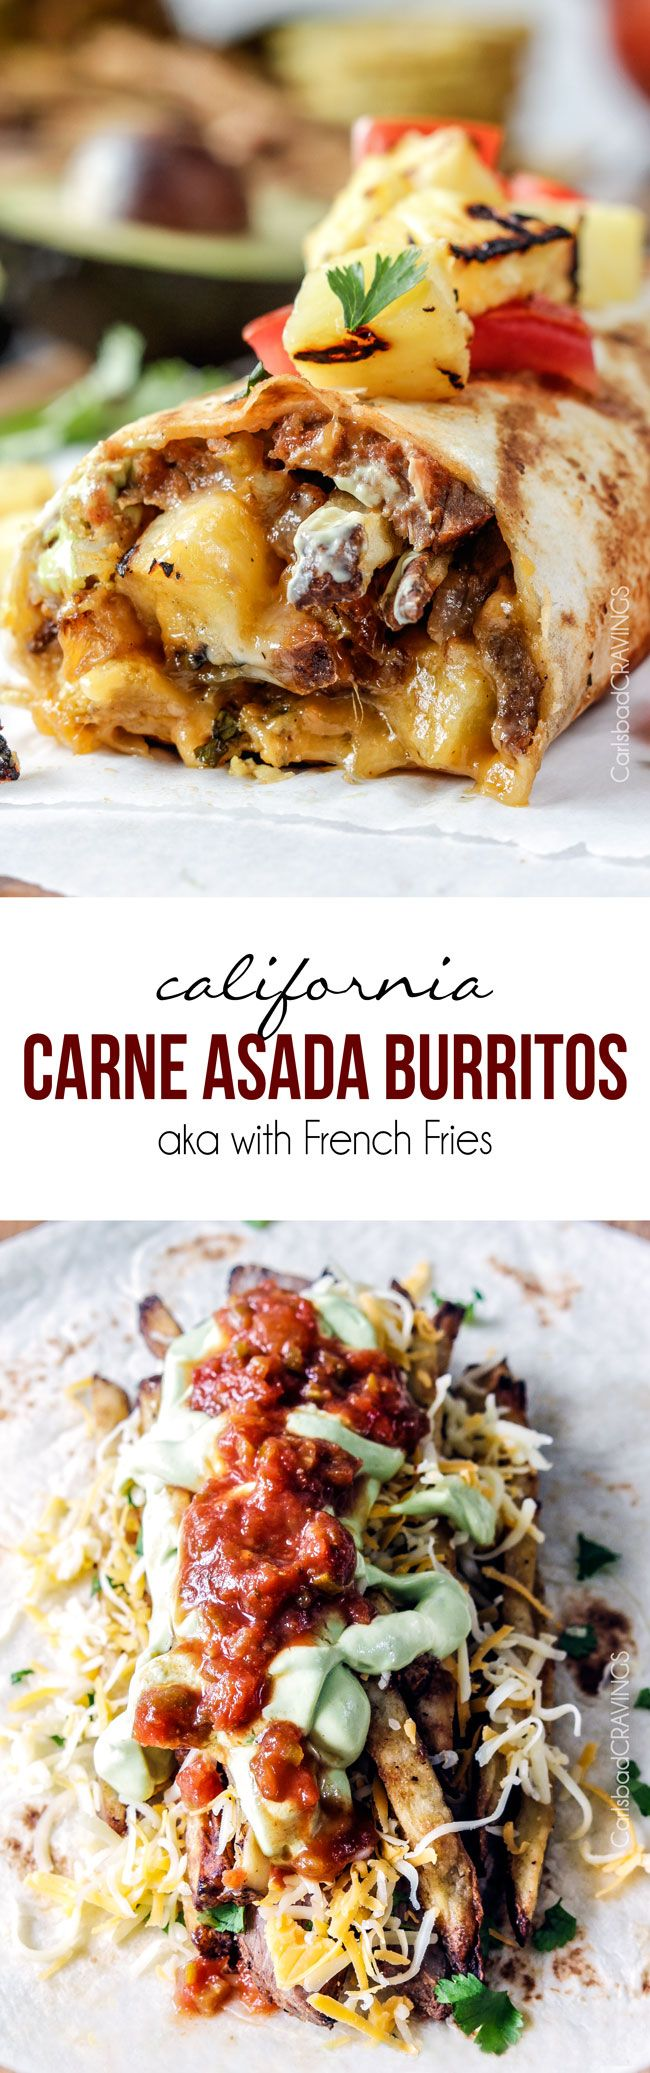 Better than takeout California Carne Asada Burritos stuffed with thinly sliced, tender marinated Carne Asada, cheese, salsa, avocado crema (pineapple optional) and the best part - Mexican French Fries!!! so easy, great for crowds at a fraction of the cost! via @carlsbadcraving